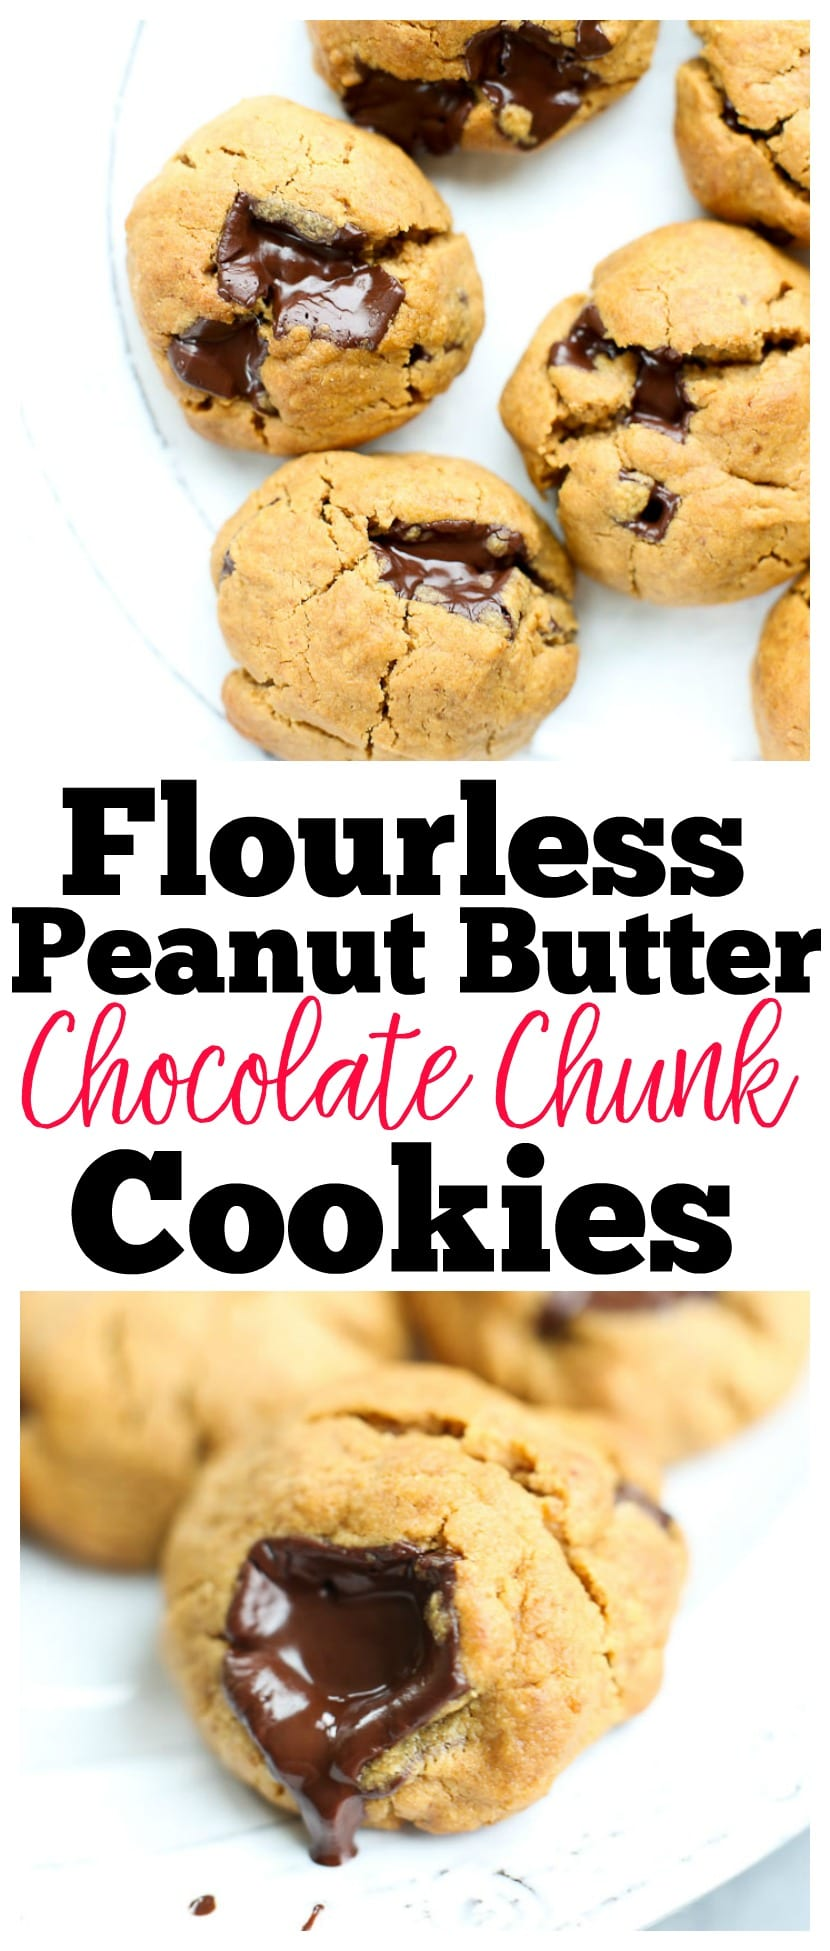 Flourless Peanut Butter Chocolate Chip Cookies Recipe | healthy cookies | gluten-free cookies |flourless cookies | dairy free |